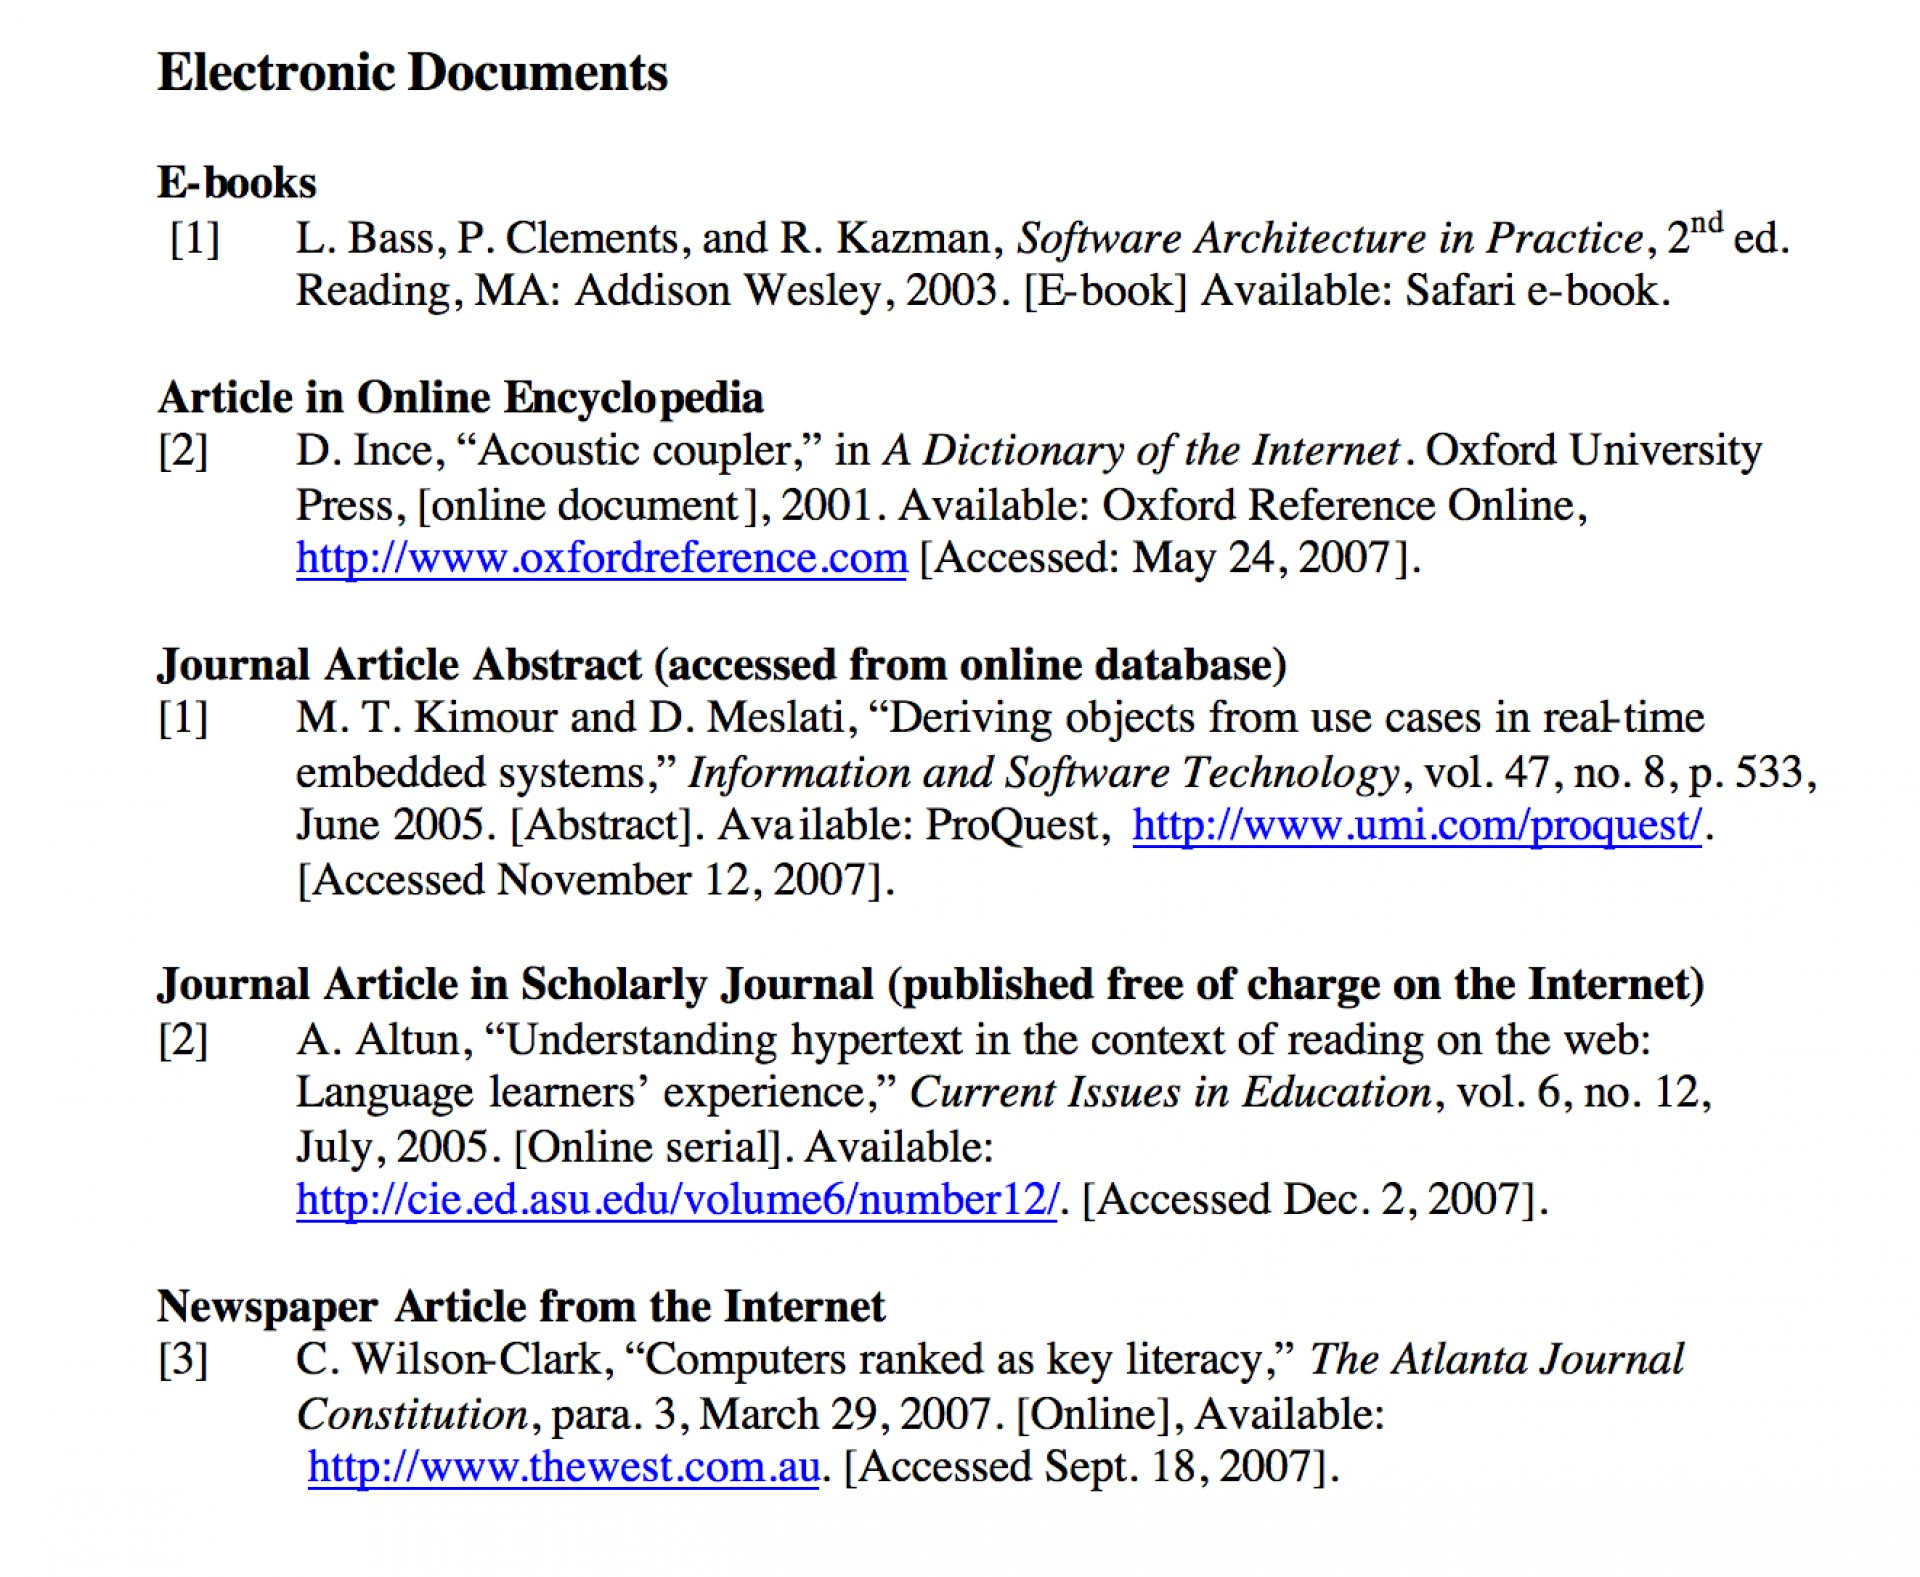 007 Research Paper Ieee Format For References In 1 1528899707 Exceptional 1920